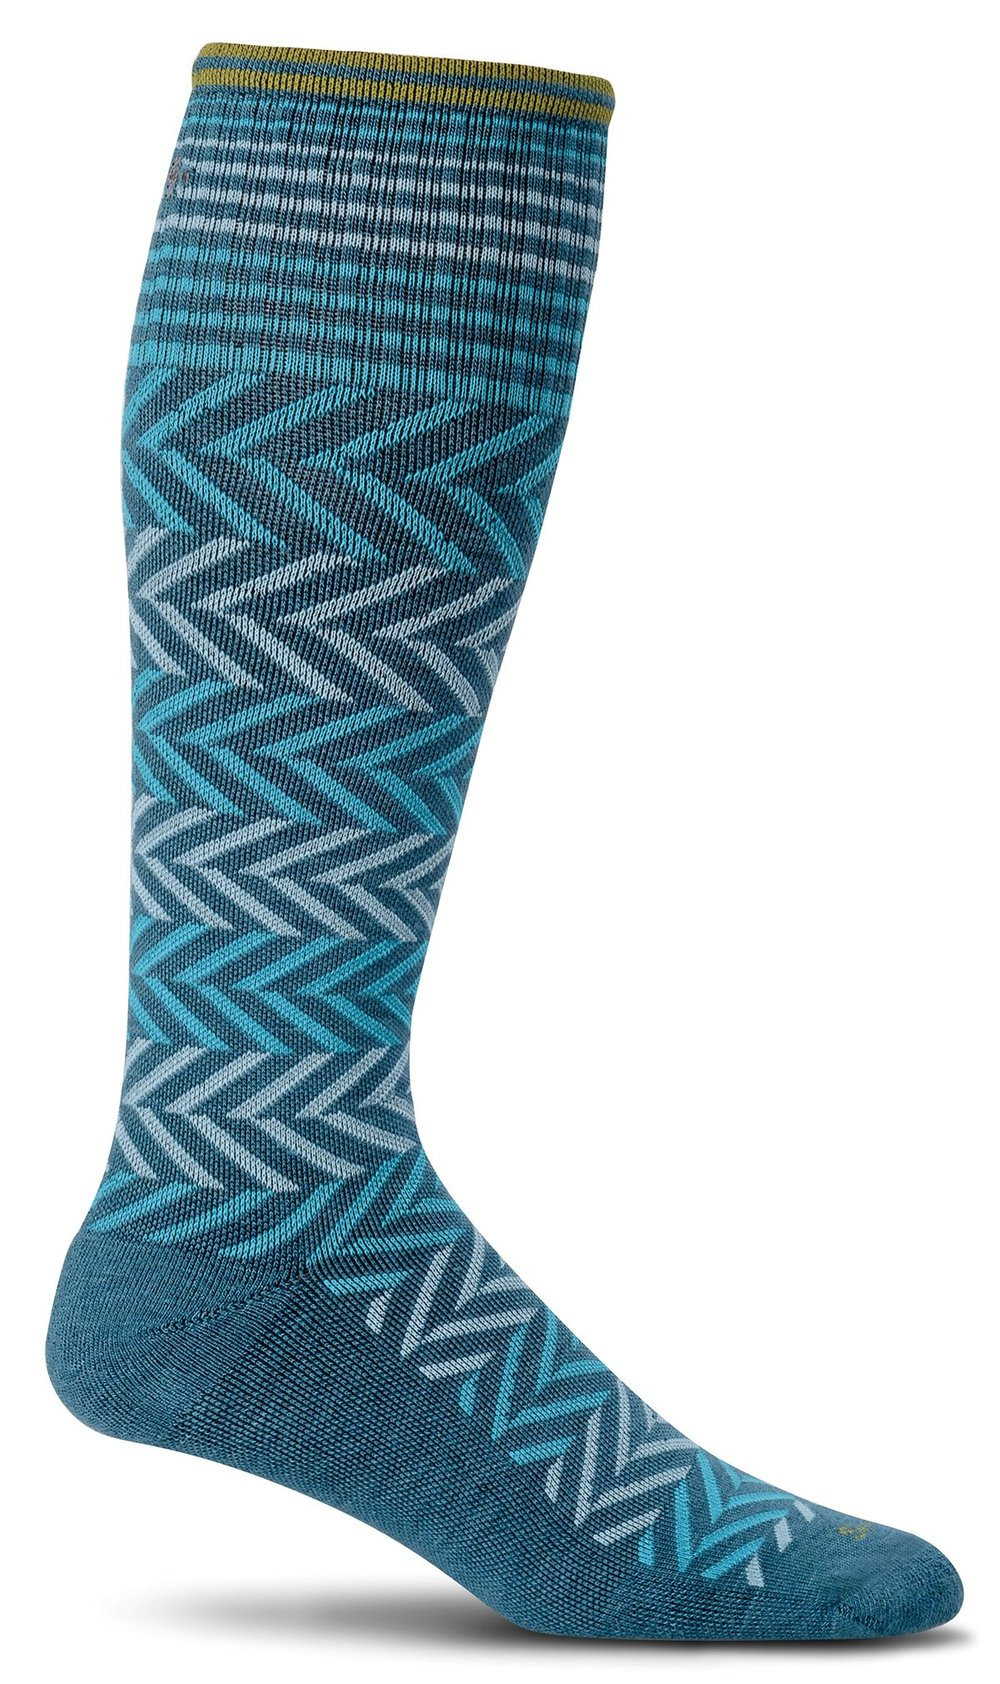 Chevron Knee-High - Teal Moderate Compression (15-20mmHg)